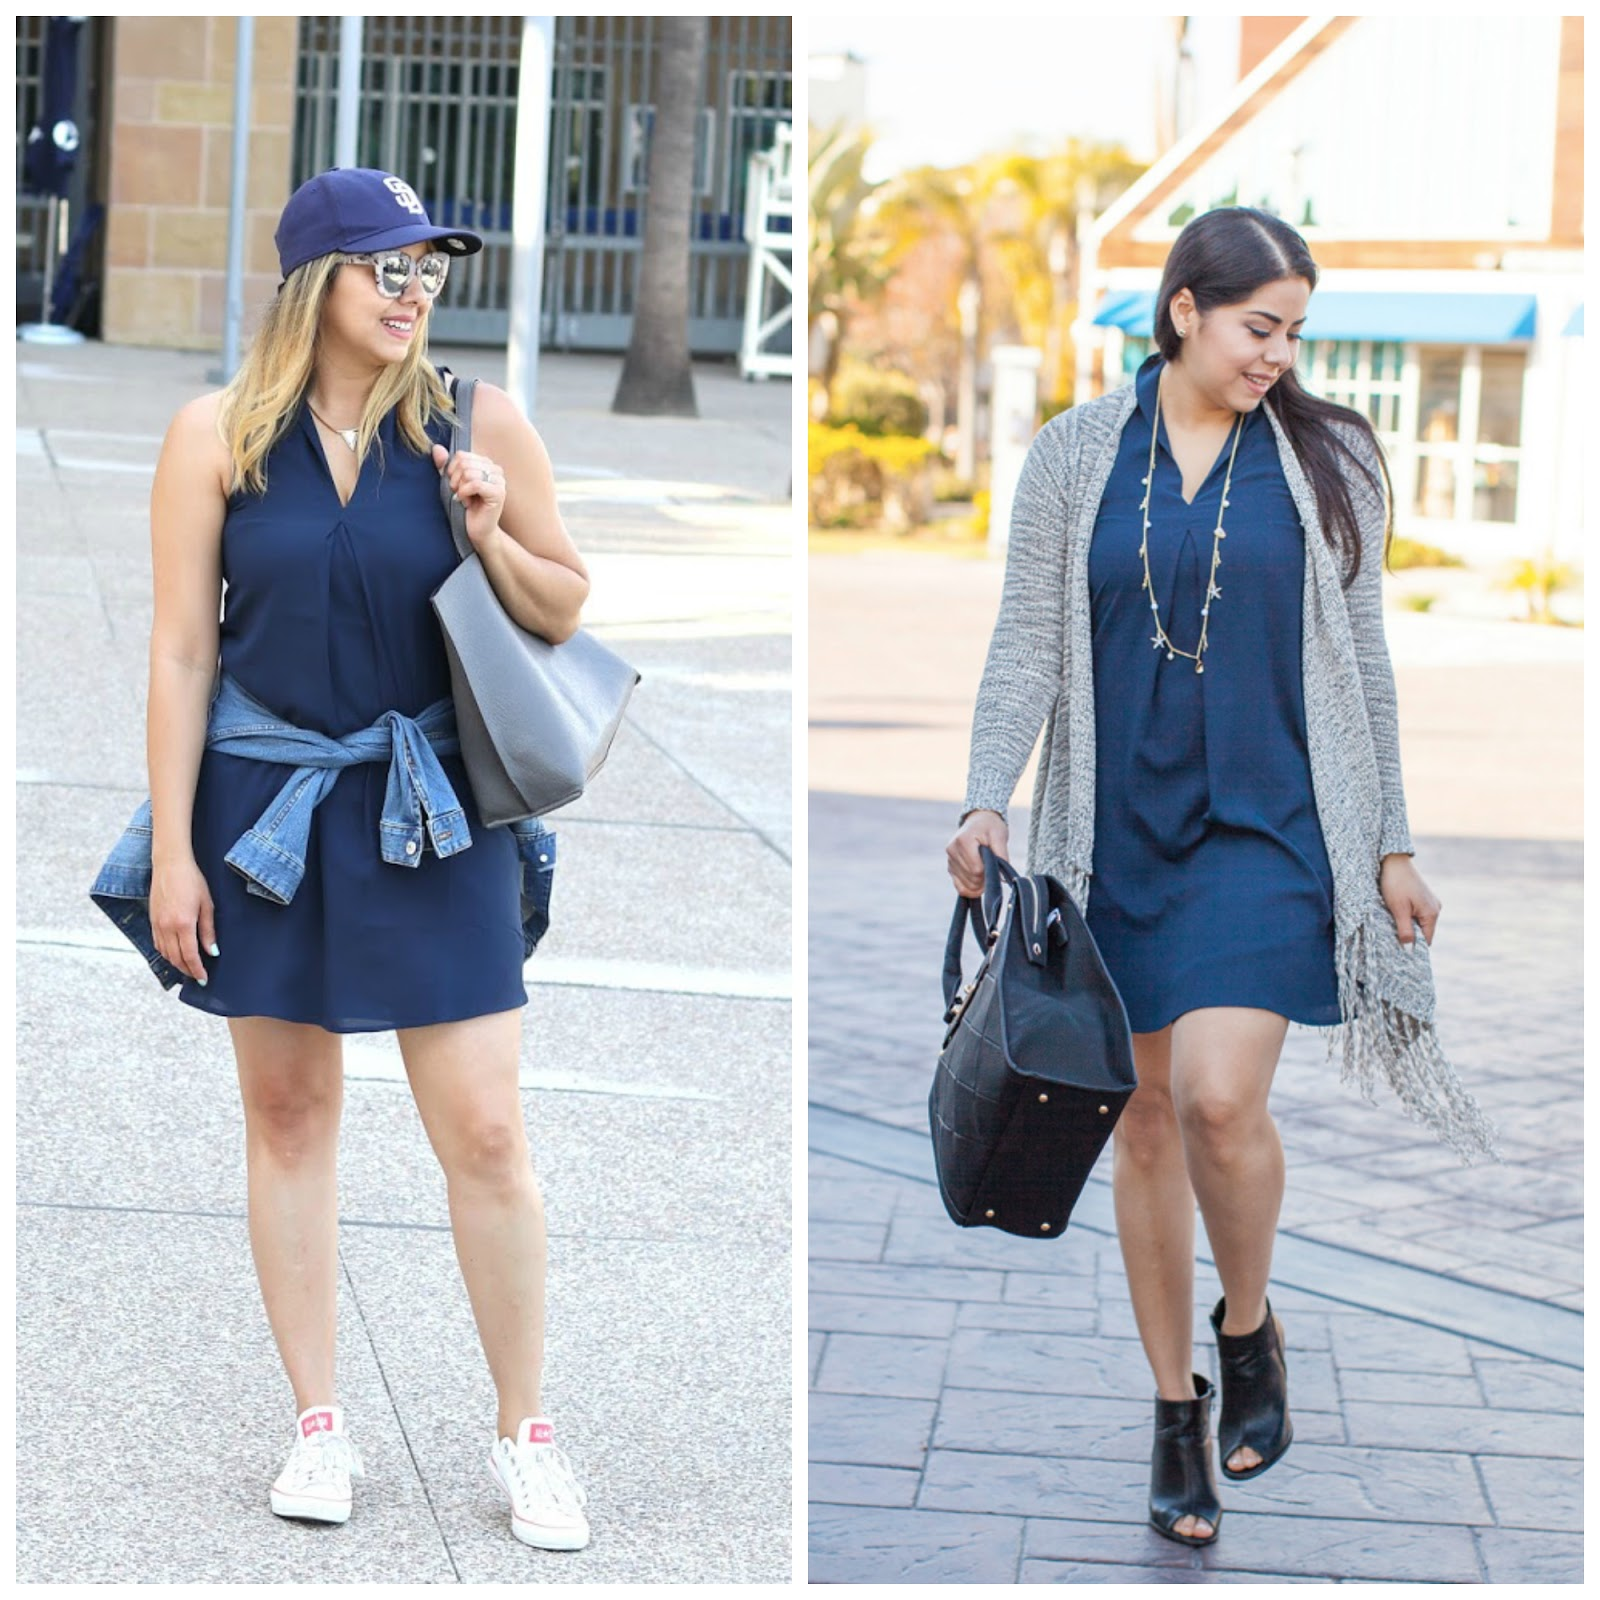 how to go from casual to dressy, one dress from casual to dressy, one dress from day to night, how to wear converse, latina fashion blogger, sdstylebloggers